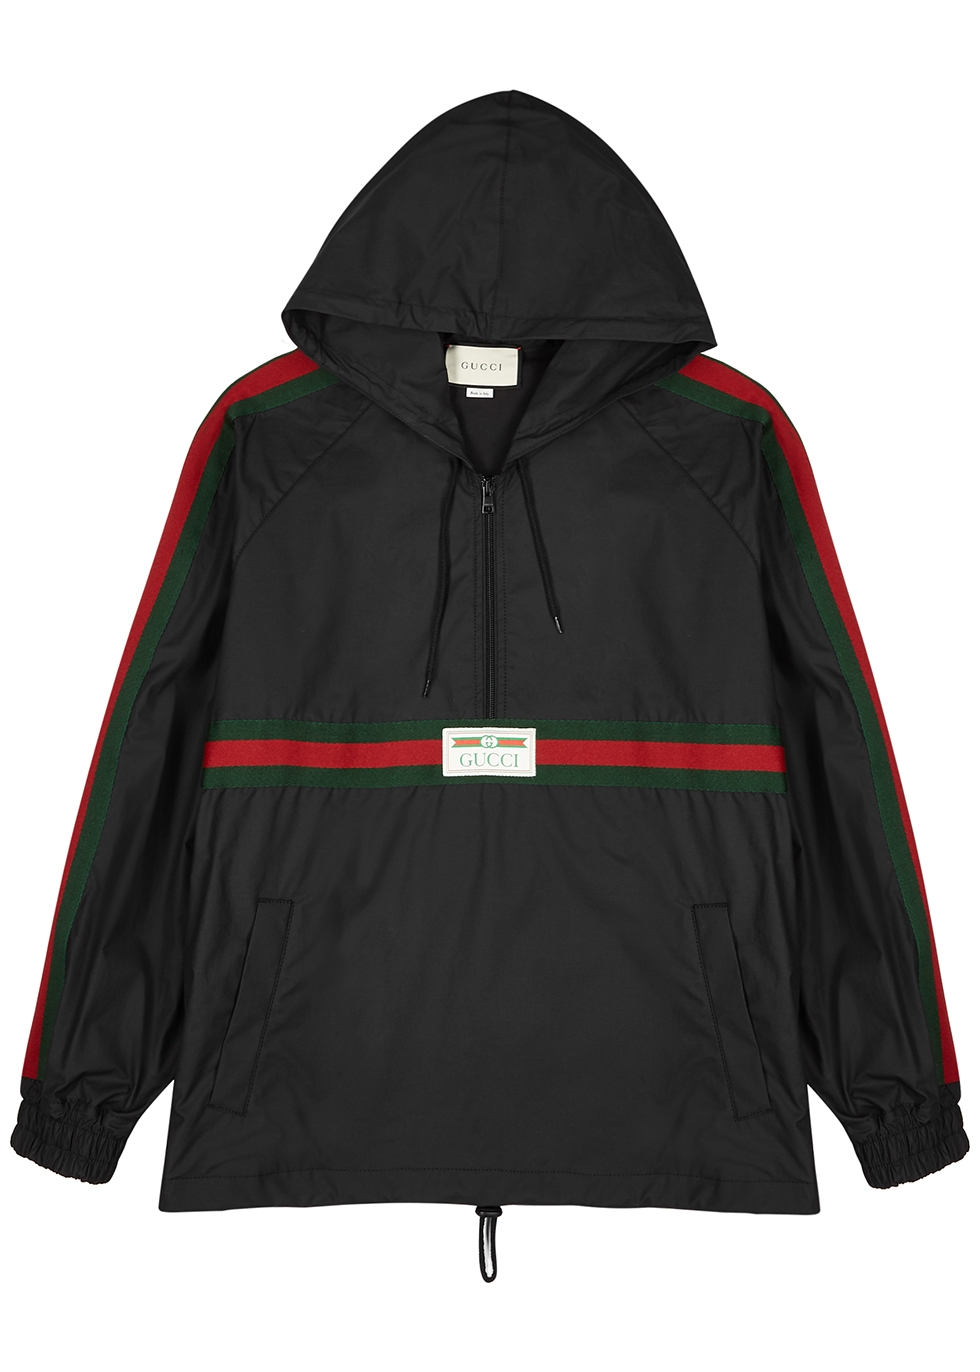 Black half-zip coated cotton jacket